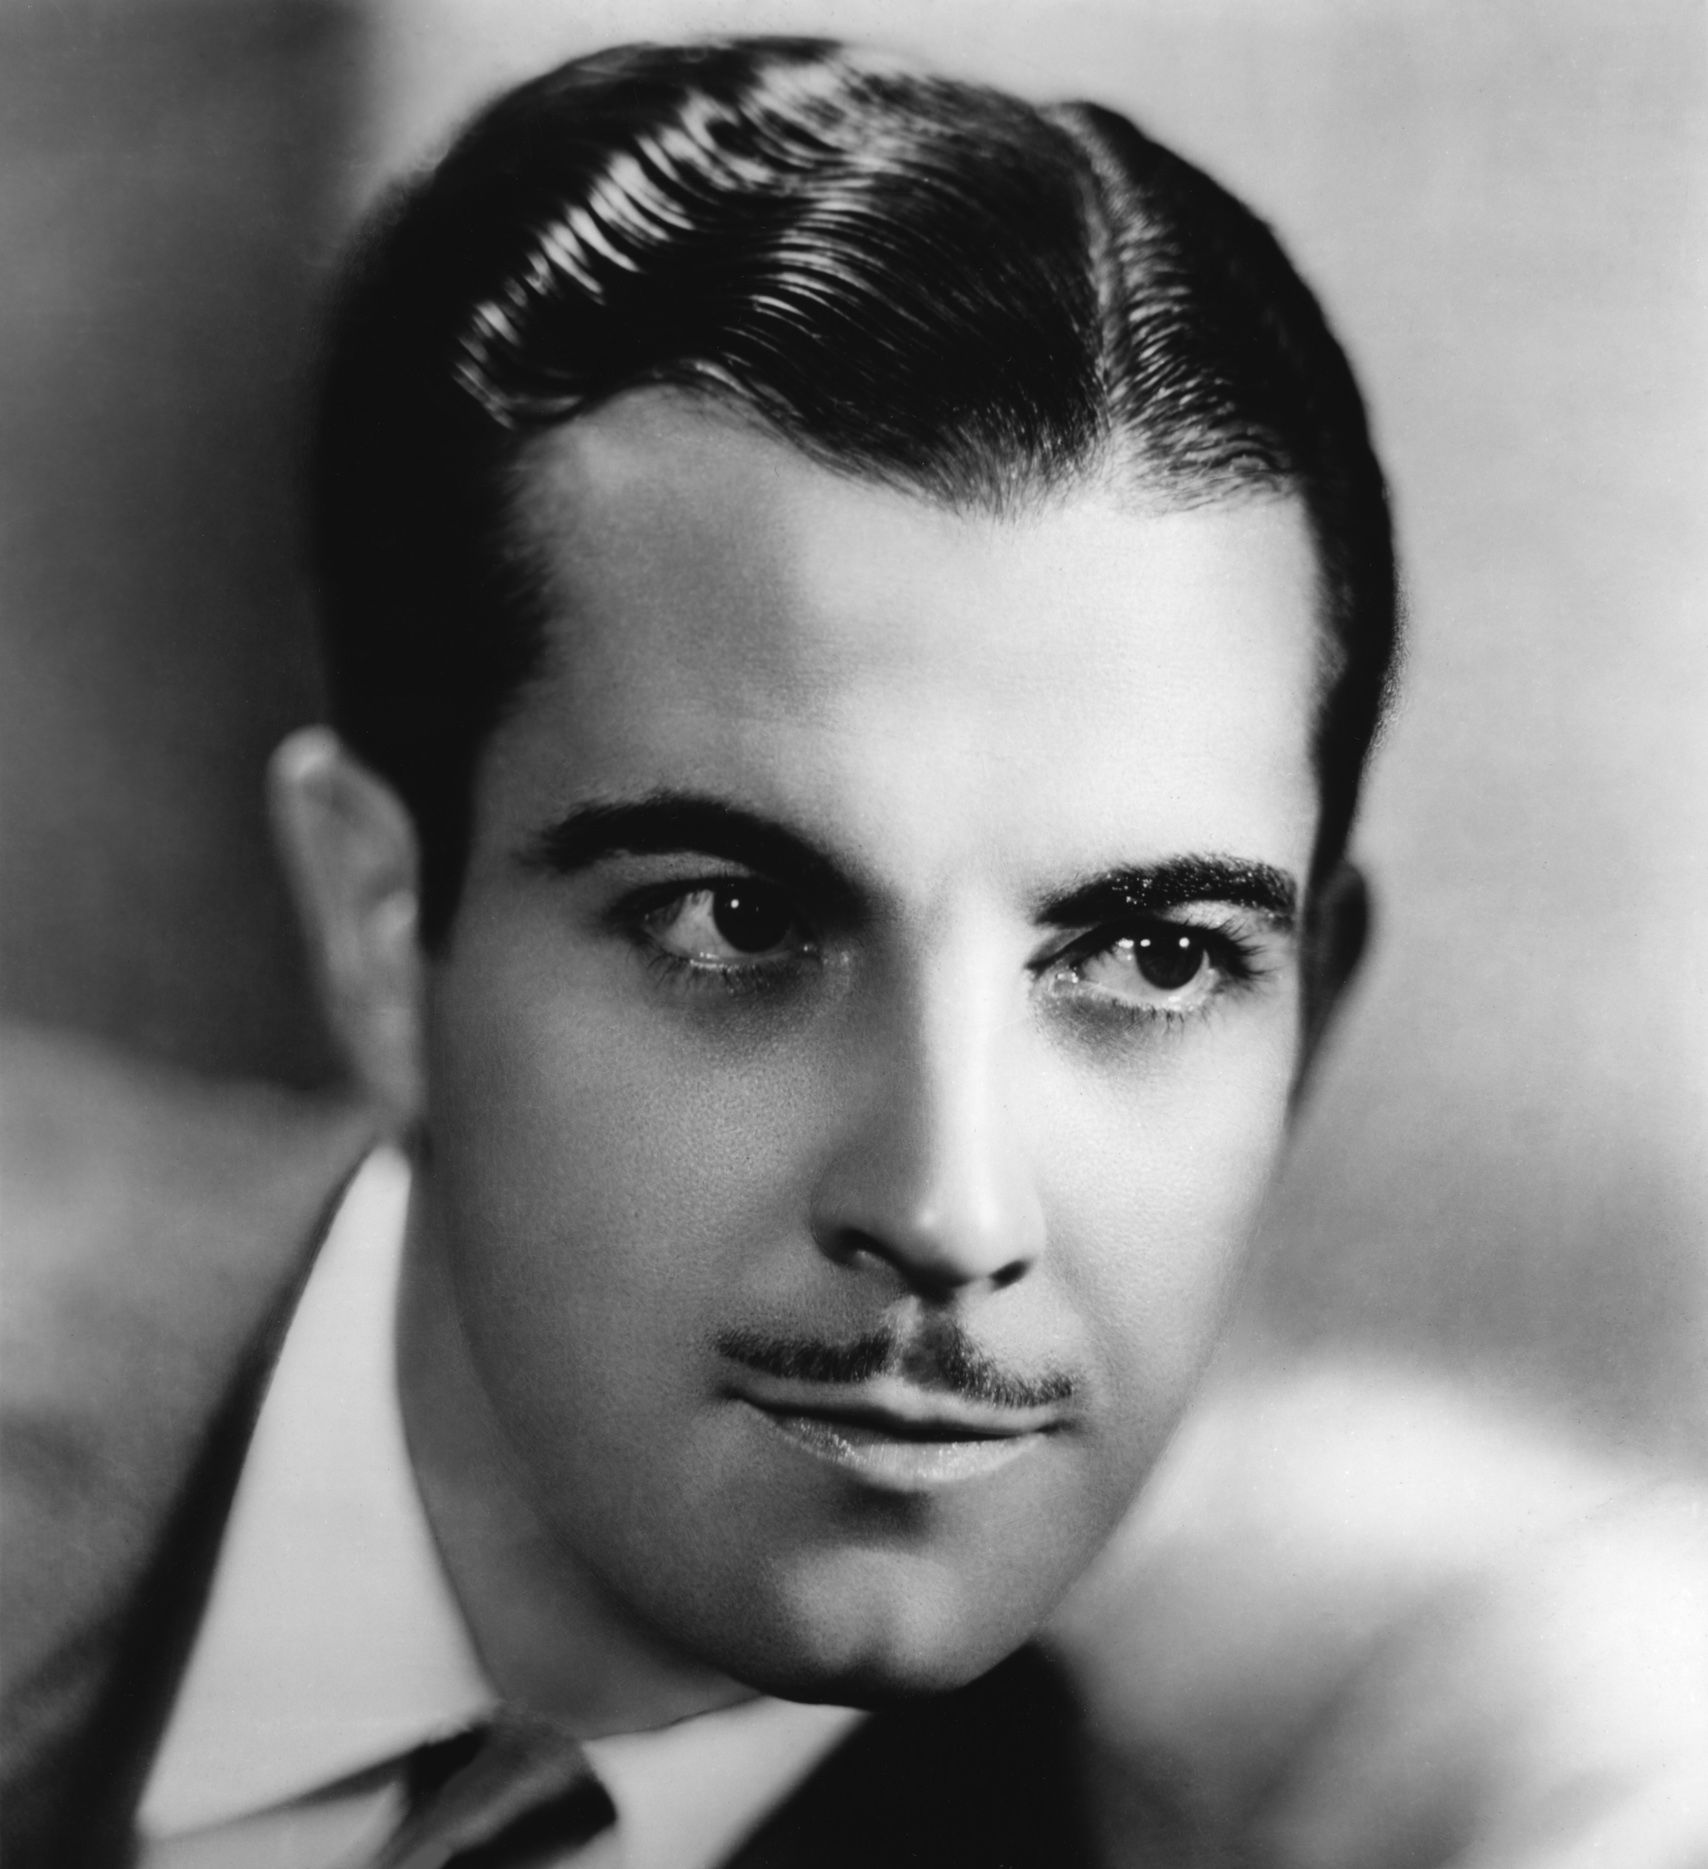 """Ramón Novarro (1899–1968) was a Mexican-American actor who began his career as a leading man in silent films in 1917, & was promoted by MGM as a """"Latin lover"""". He was troubled all his life by his conflicted feelings toward his Catholicism & his homosexuality. His life-long struggle with alcoholism is often traced to these issues. Novarro was murdered by brothers Paul & Tom Ferguson, aged 22 & 17, whom he had hired from an agency to come to his Laurel Canyon home for sex."""